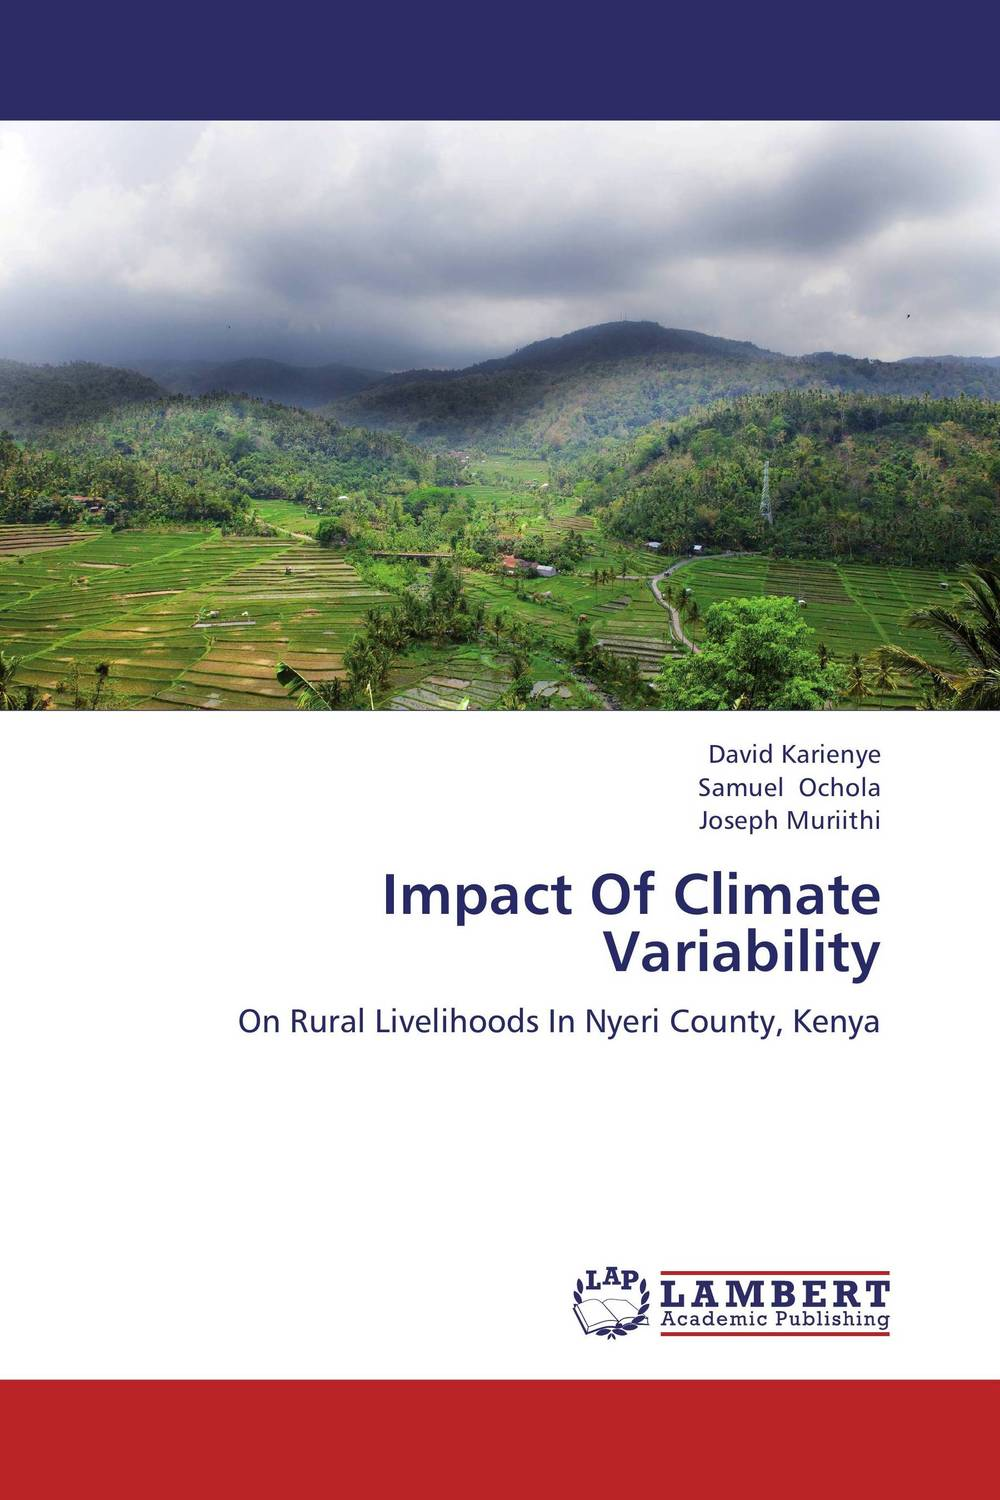 Impact Of Climate Variability suh jude abenwi the economic impact of climate variability